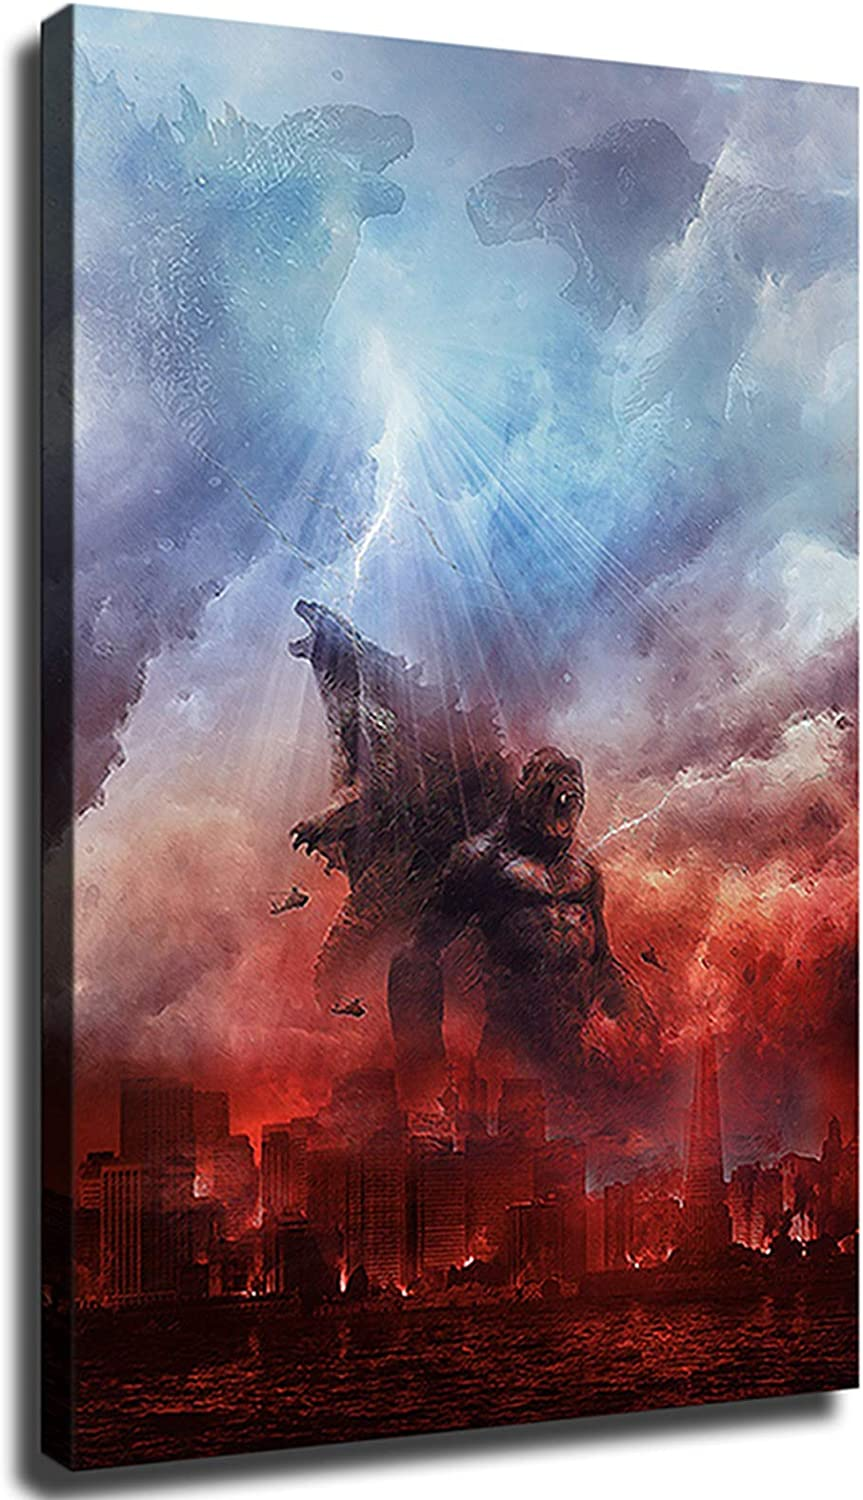 Godzilla Vs King Kong 2021 Movie Poster Canvas Wall Art HD Print Poster Mural (24x36inch,01-Canvas roll)